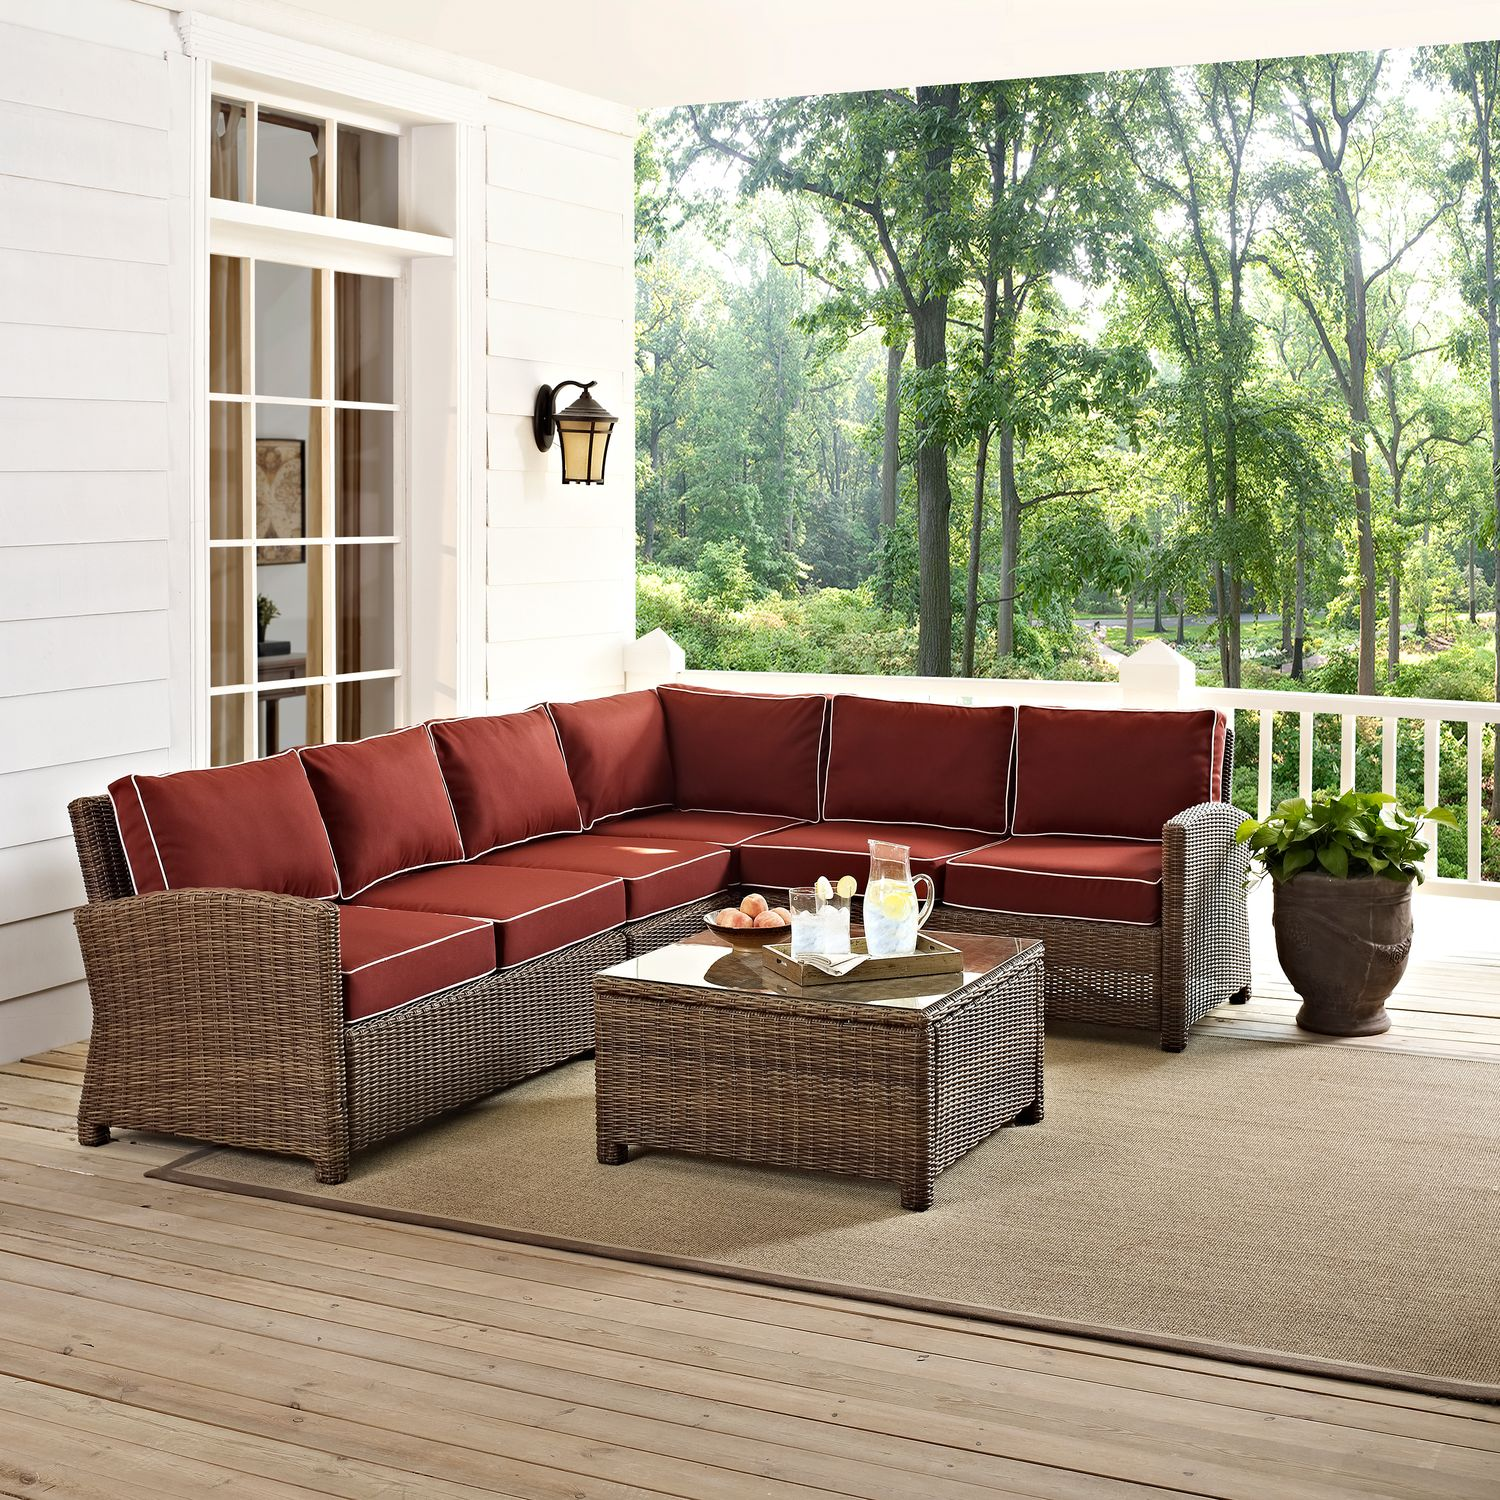 Destin 4 Piece Outdoor Sectional And Cocktail Table Set Sangria Value City Furniture And